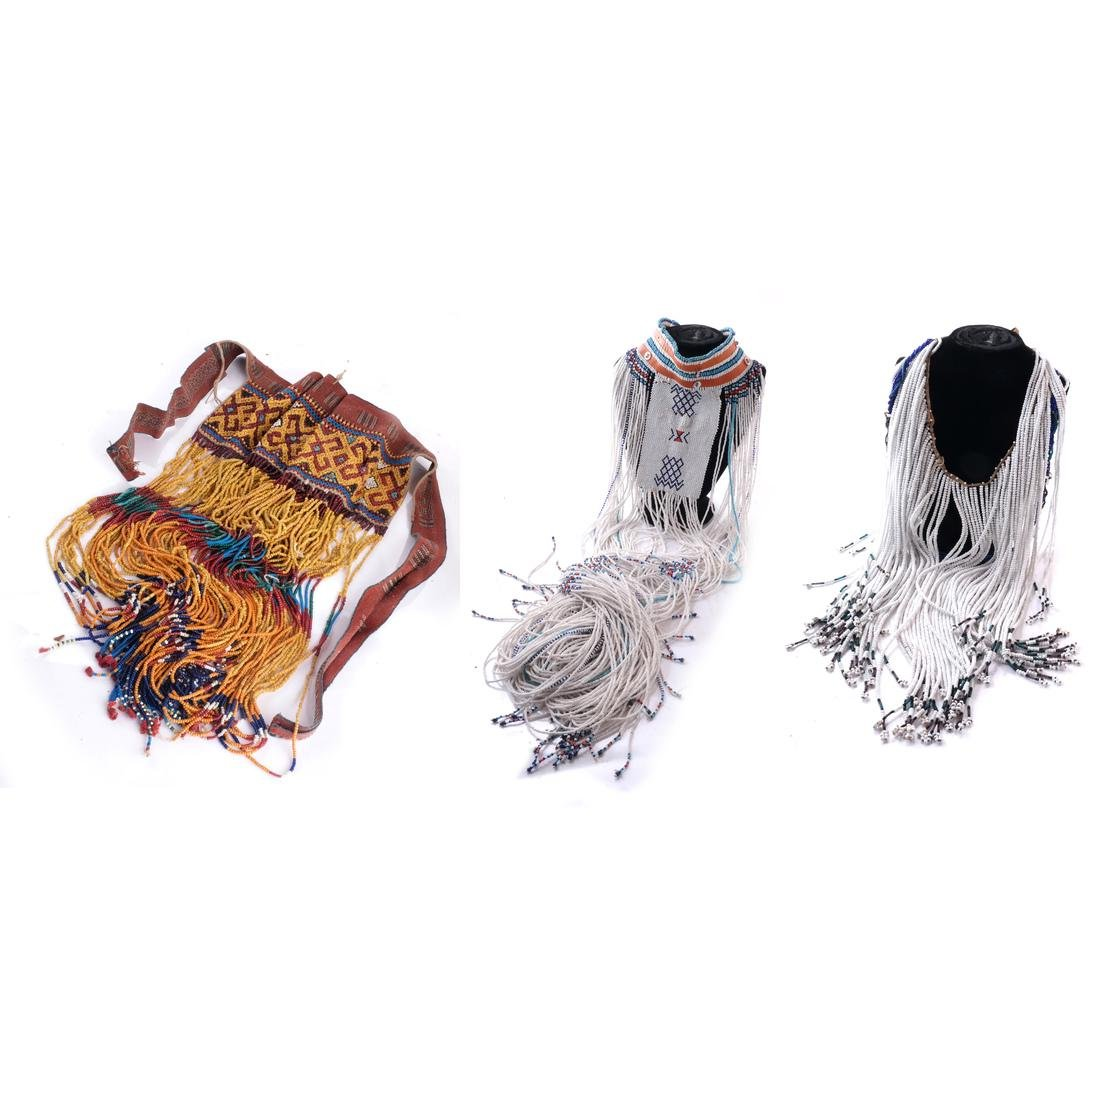 Indo-Asian, Tribal Clothing & Accessories